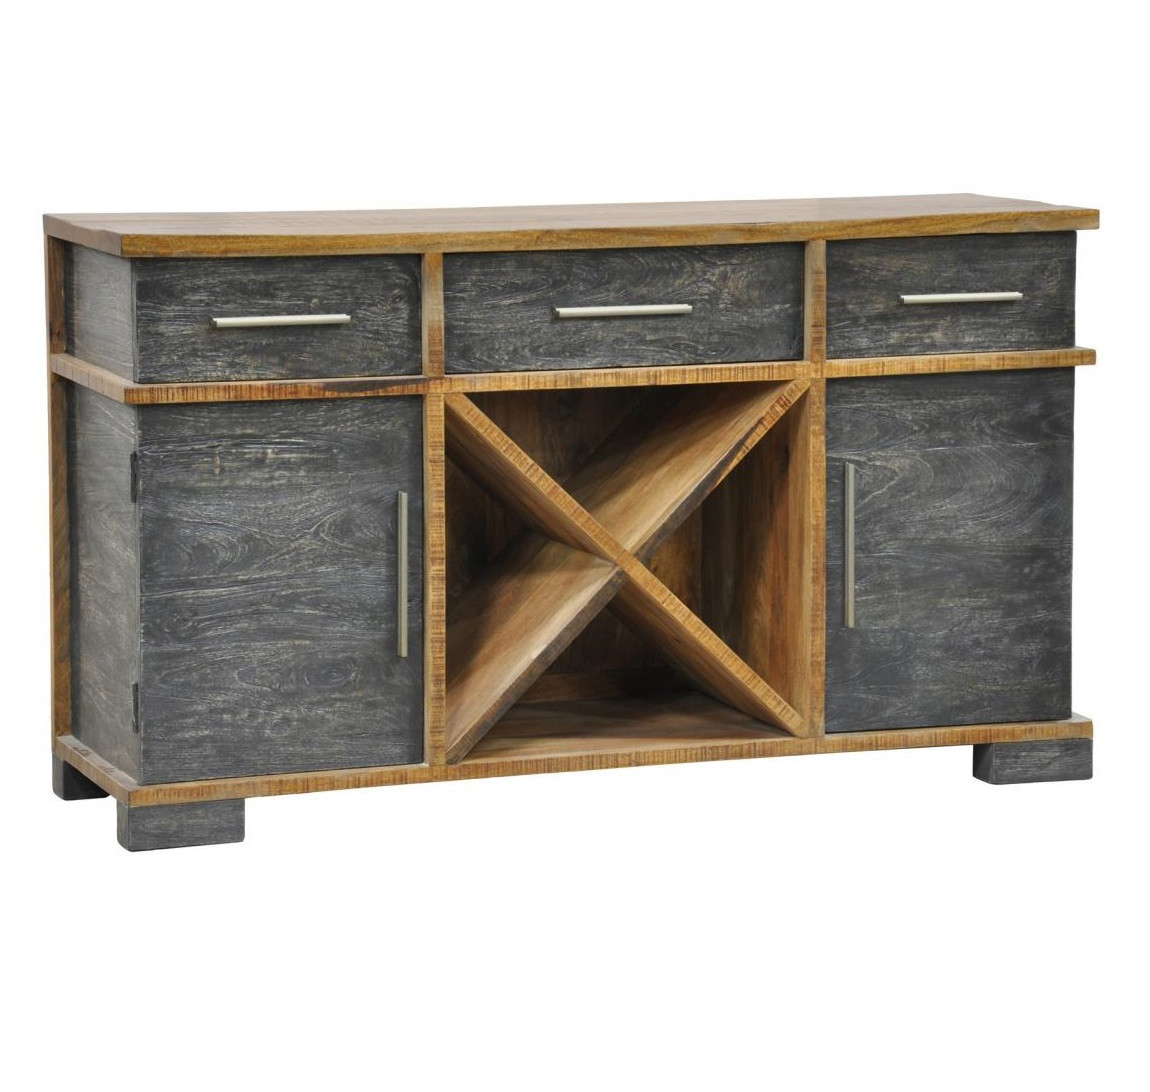 Rustic buffet table furniture - Image 1